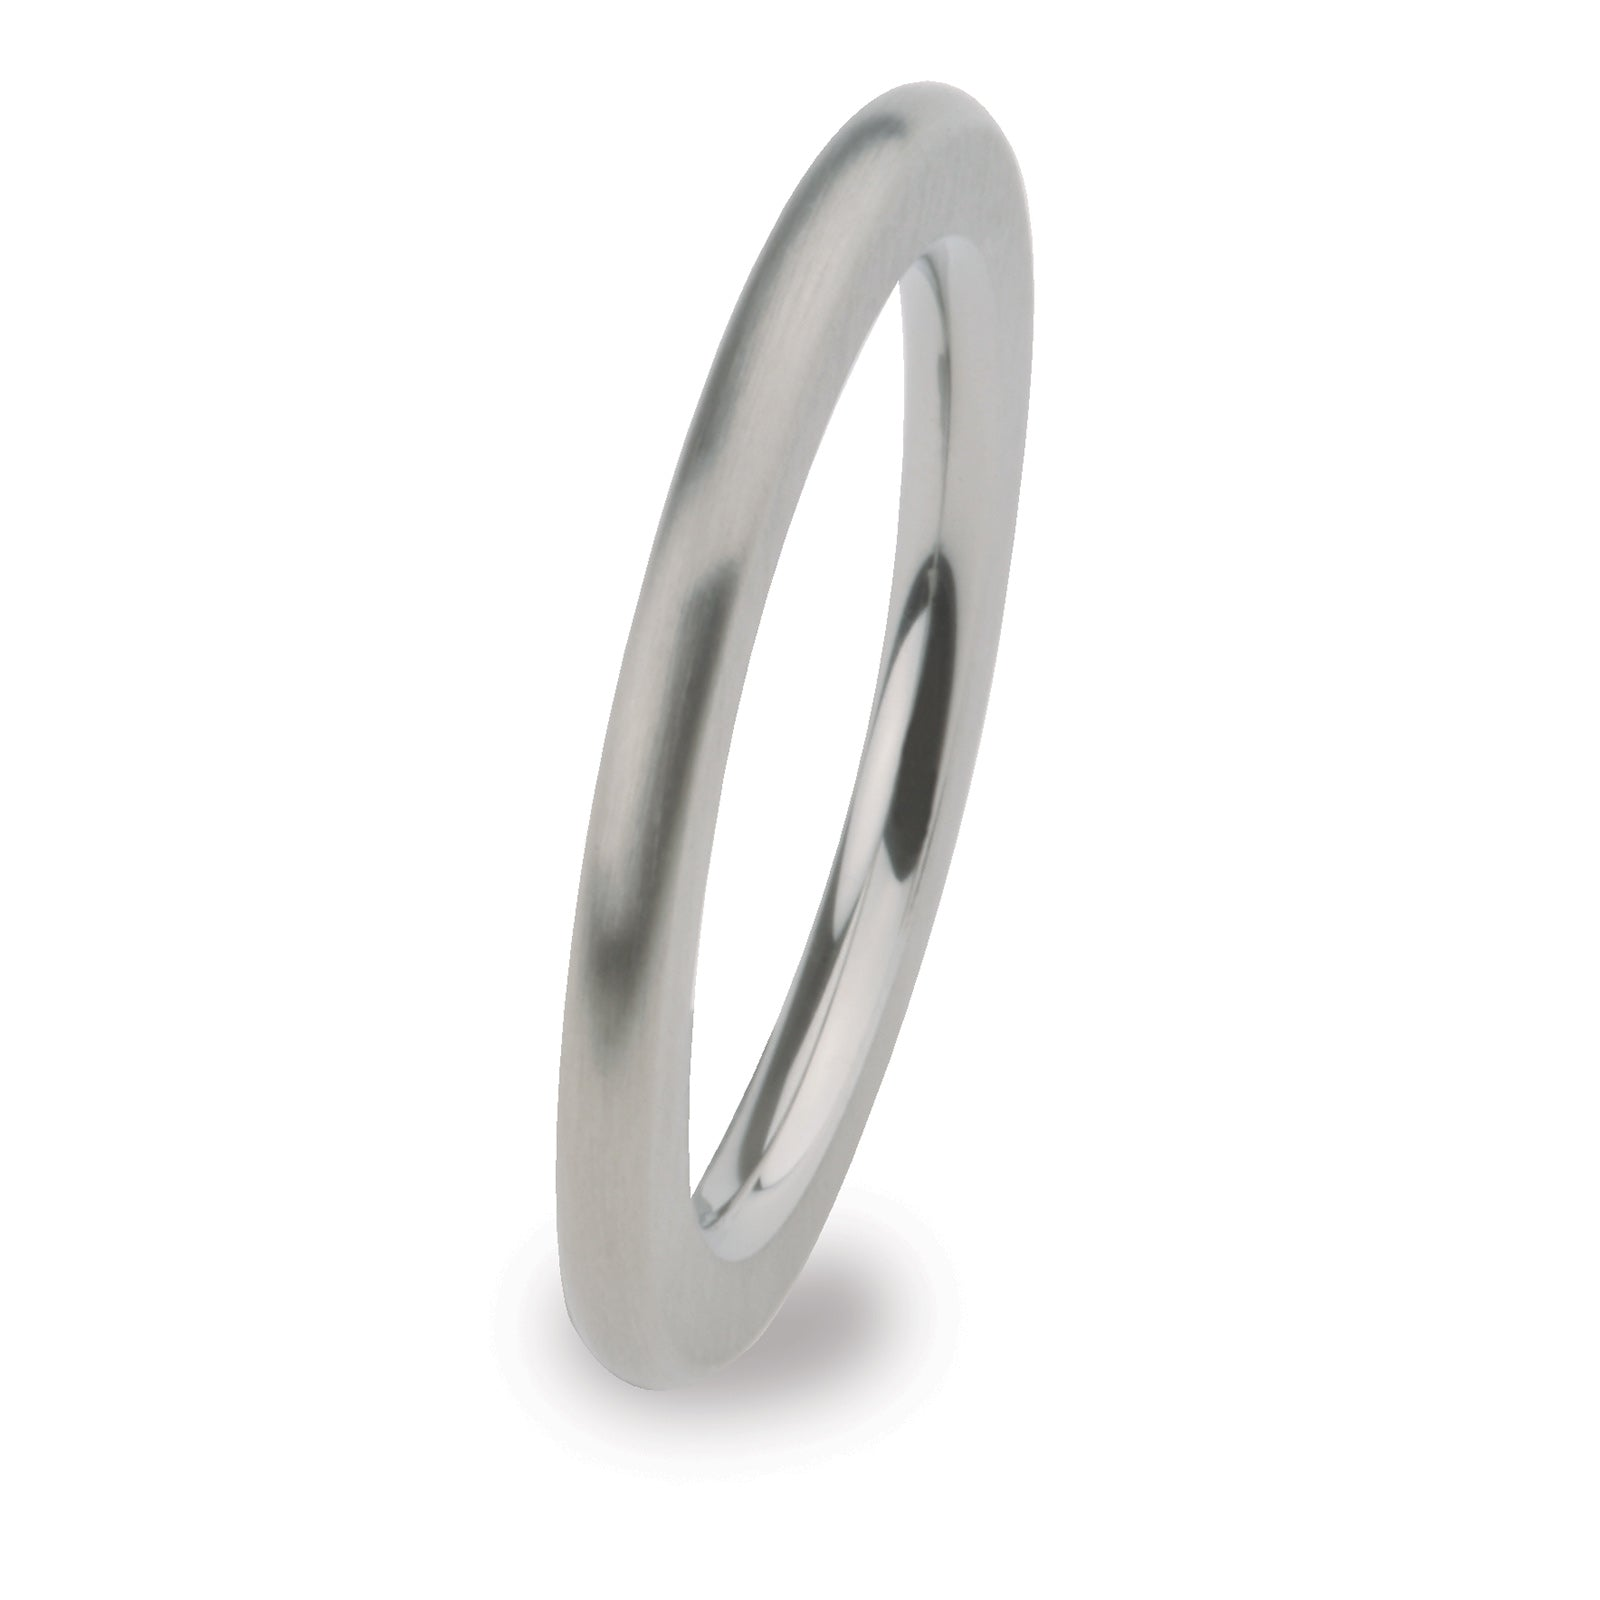 R250 Stainless Steel Ring